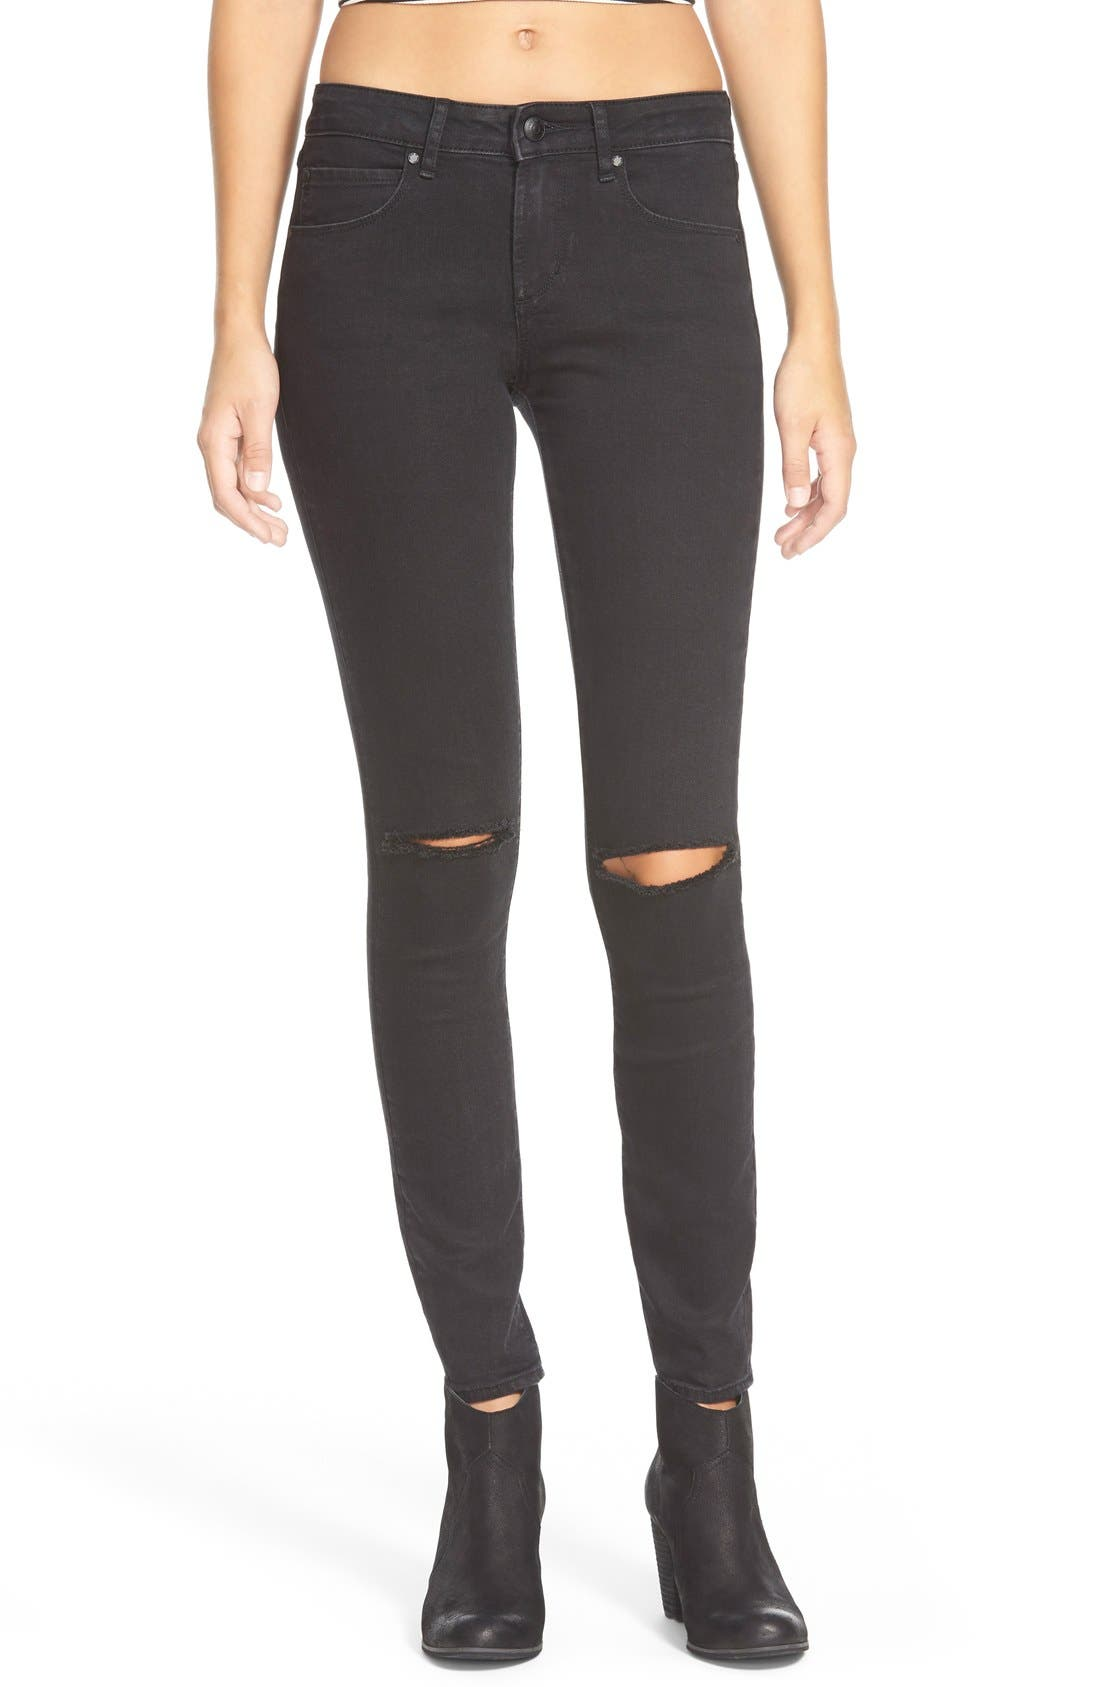 Alternate Image 1 Selected - Articles of Society 'Sarah' Distressed Skinny Jeans (Black Cat)